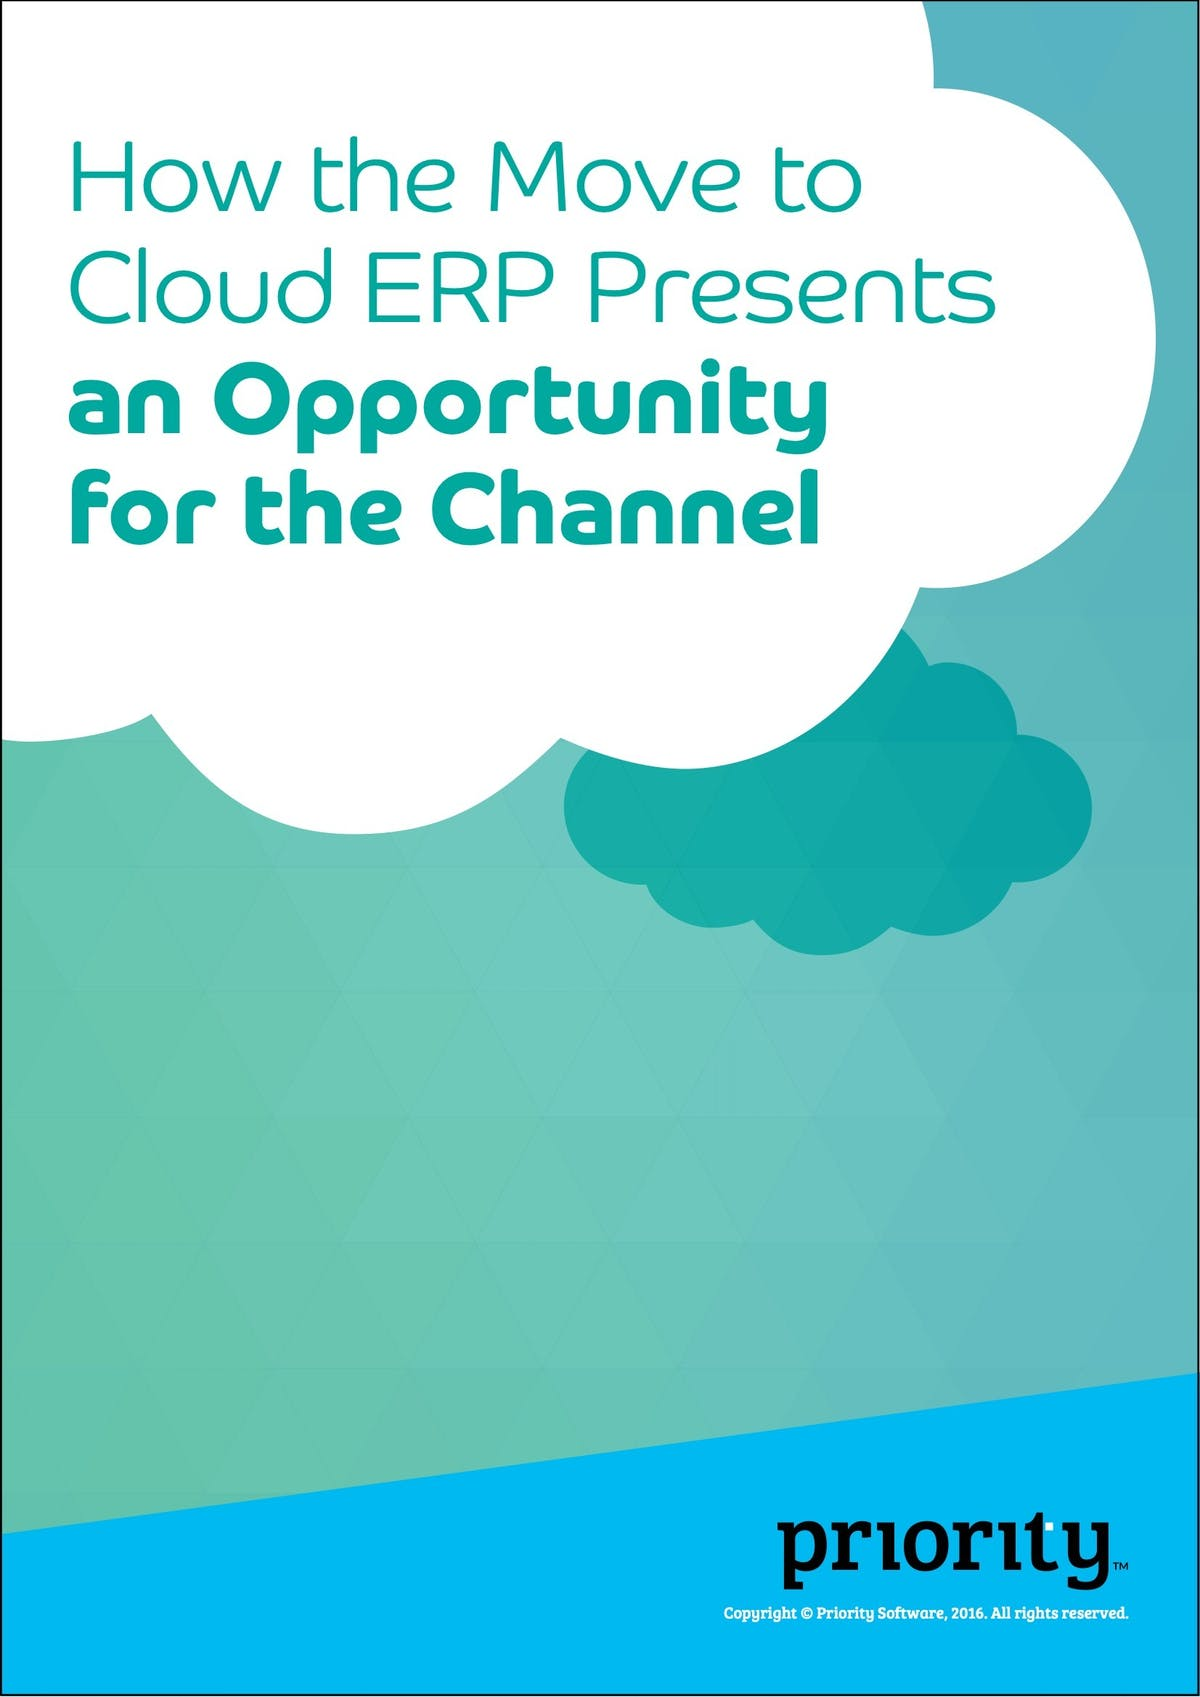 Priority Software ERP White Paper - How the Move to Cloud ERP Presents an Opportunity for the Channel